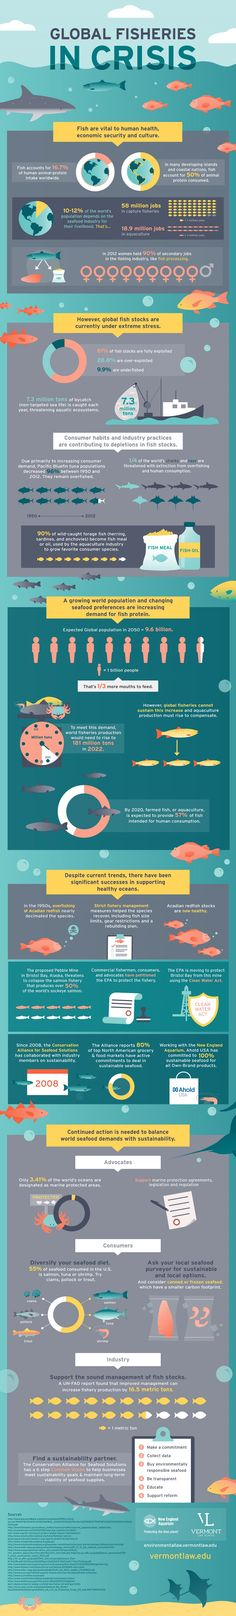 Why the Global Fisheries are in a Crisis Infrographic